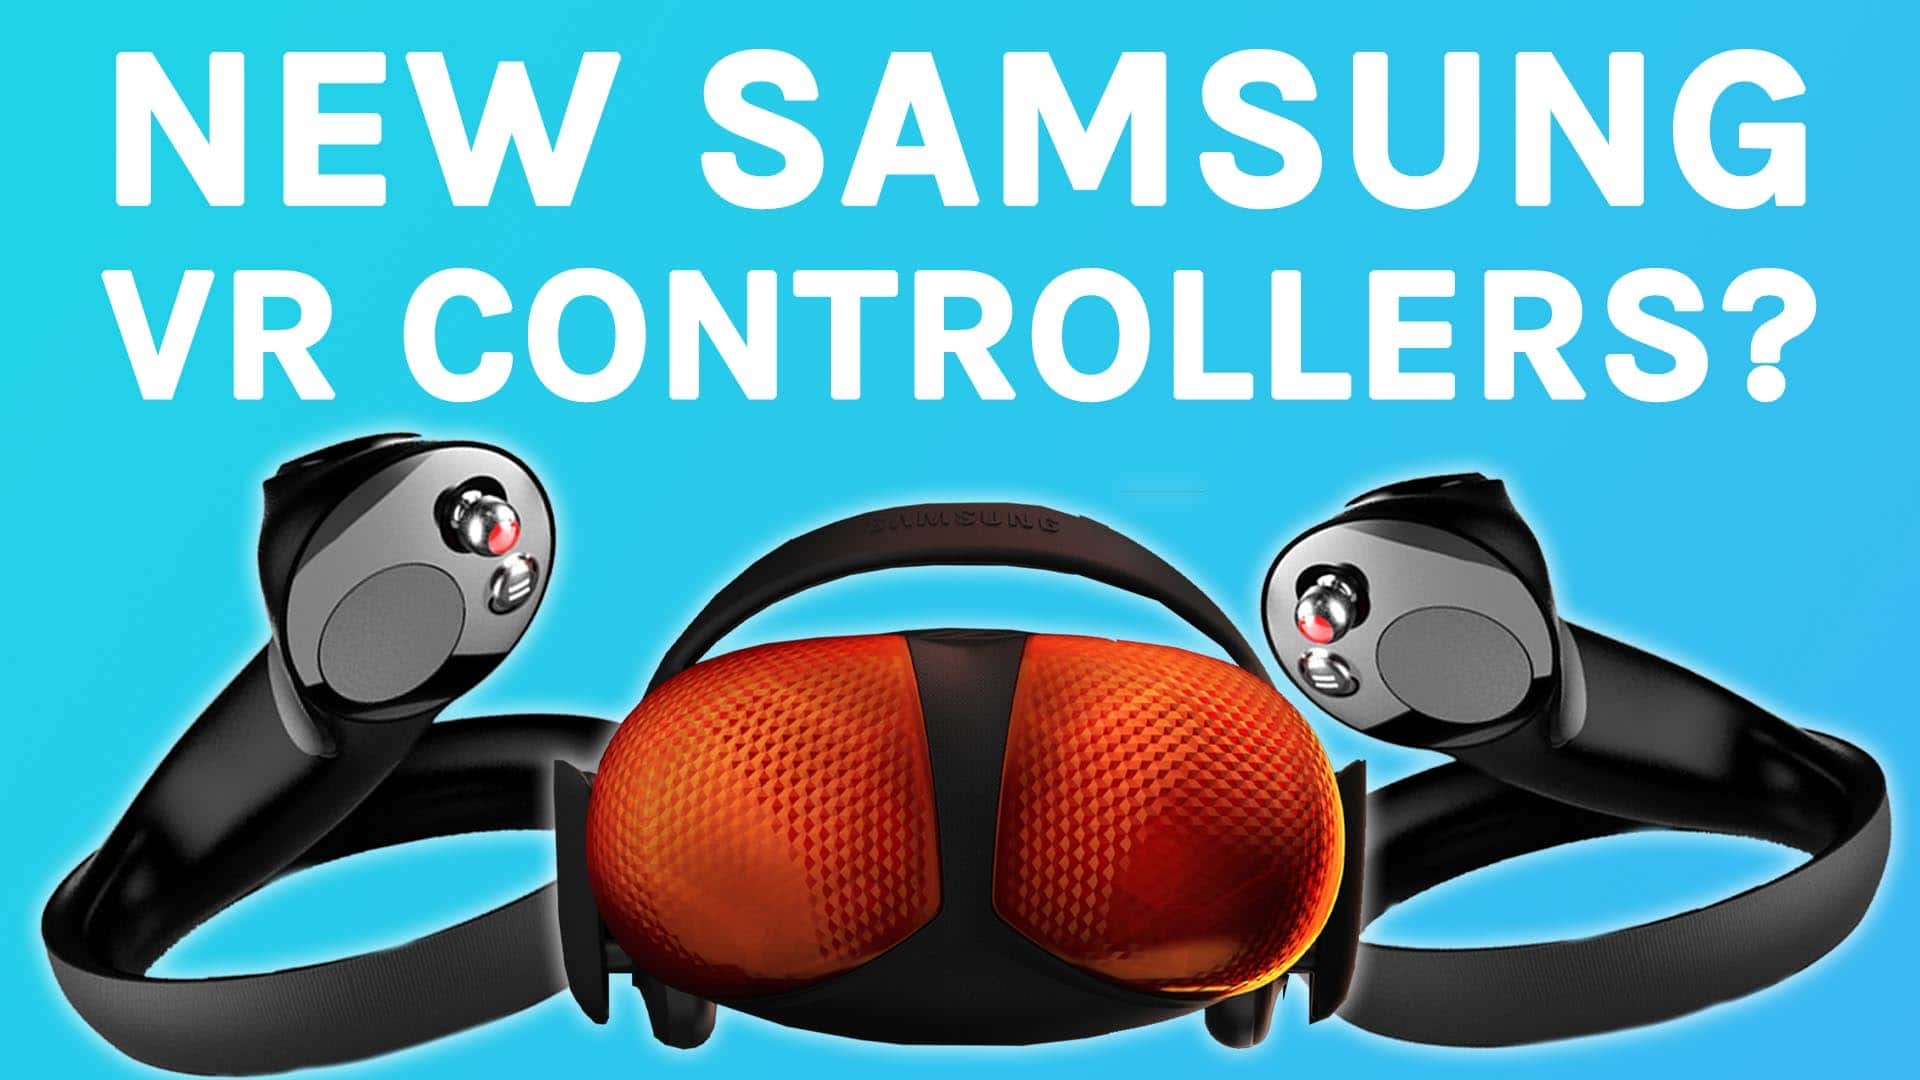 samsung vr controllers 2021